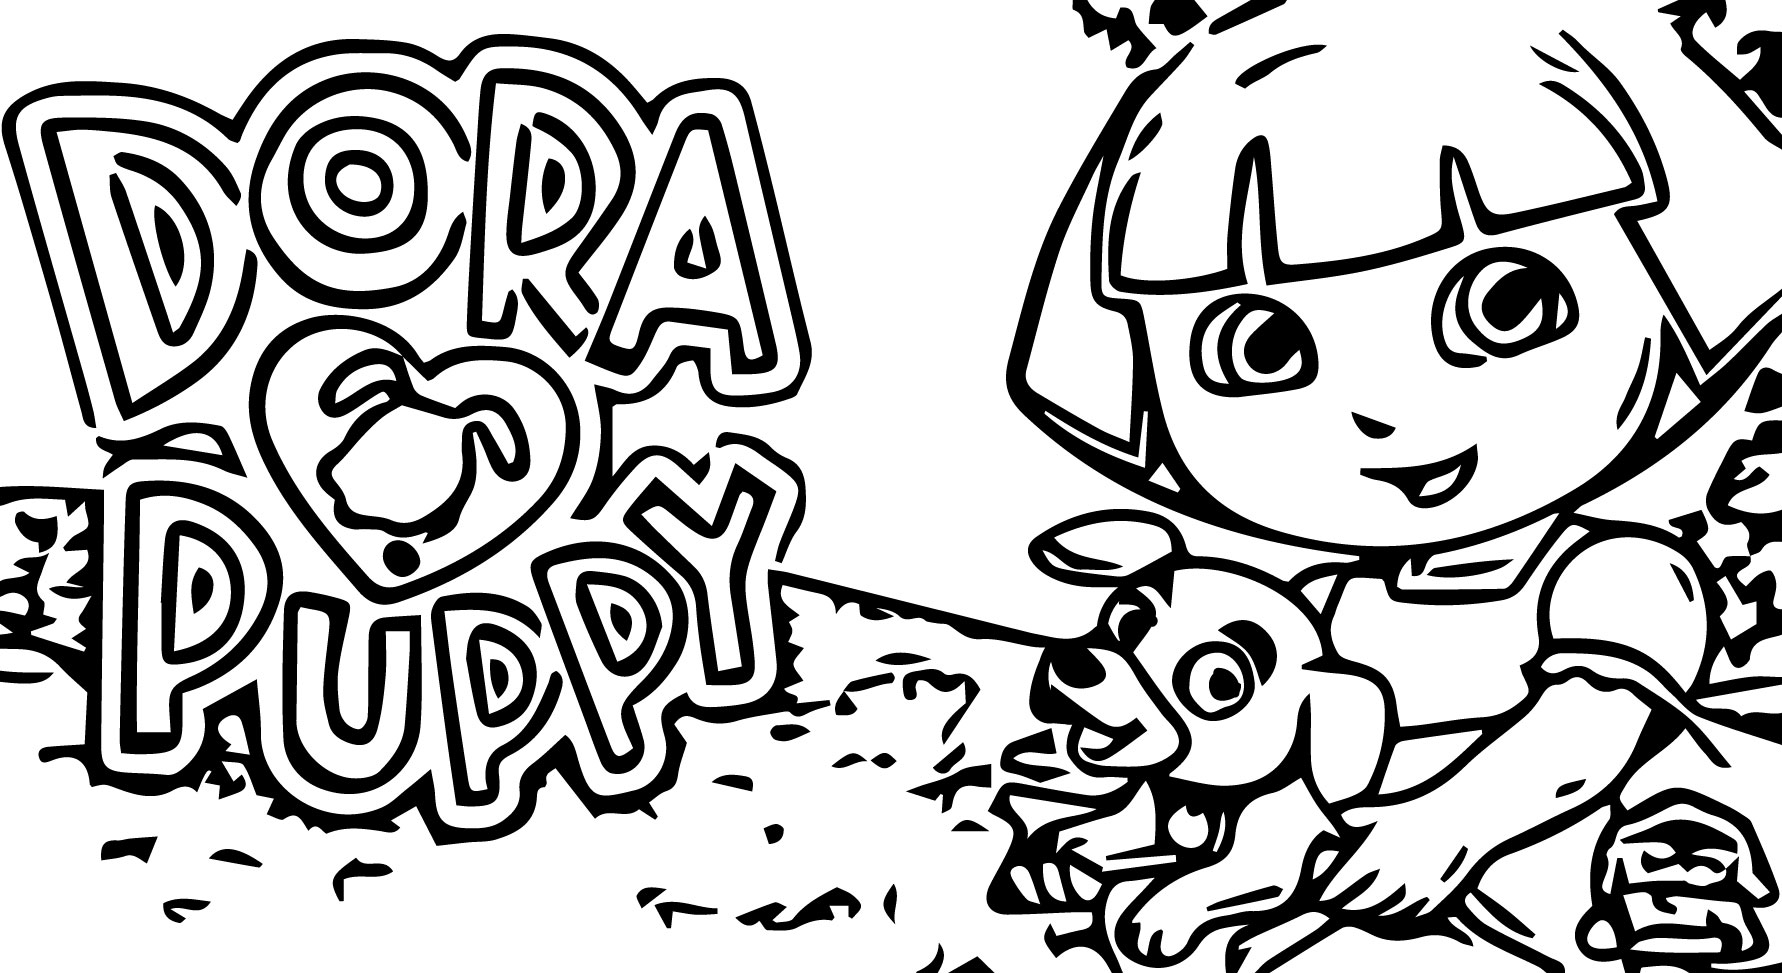 Dora Loves Puppy Coloring Page